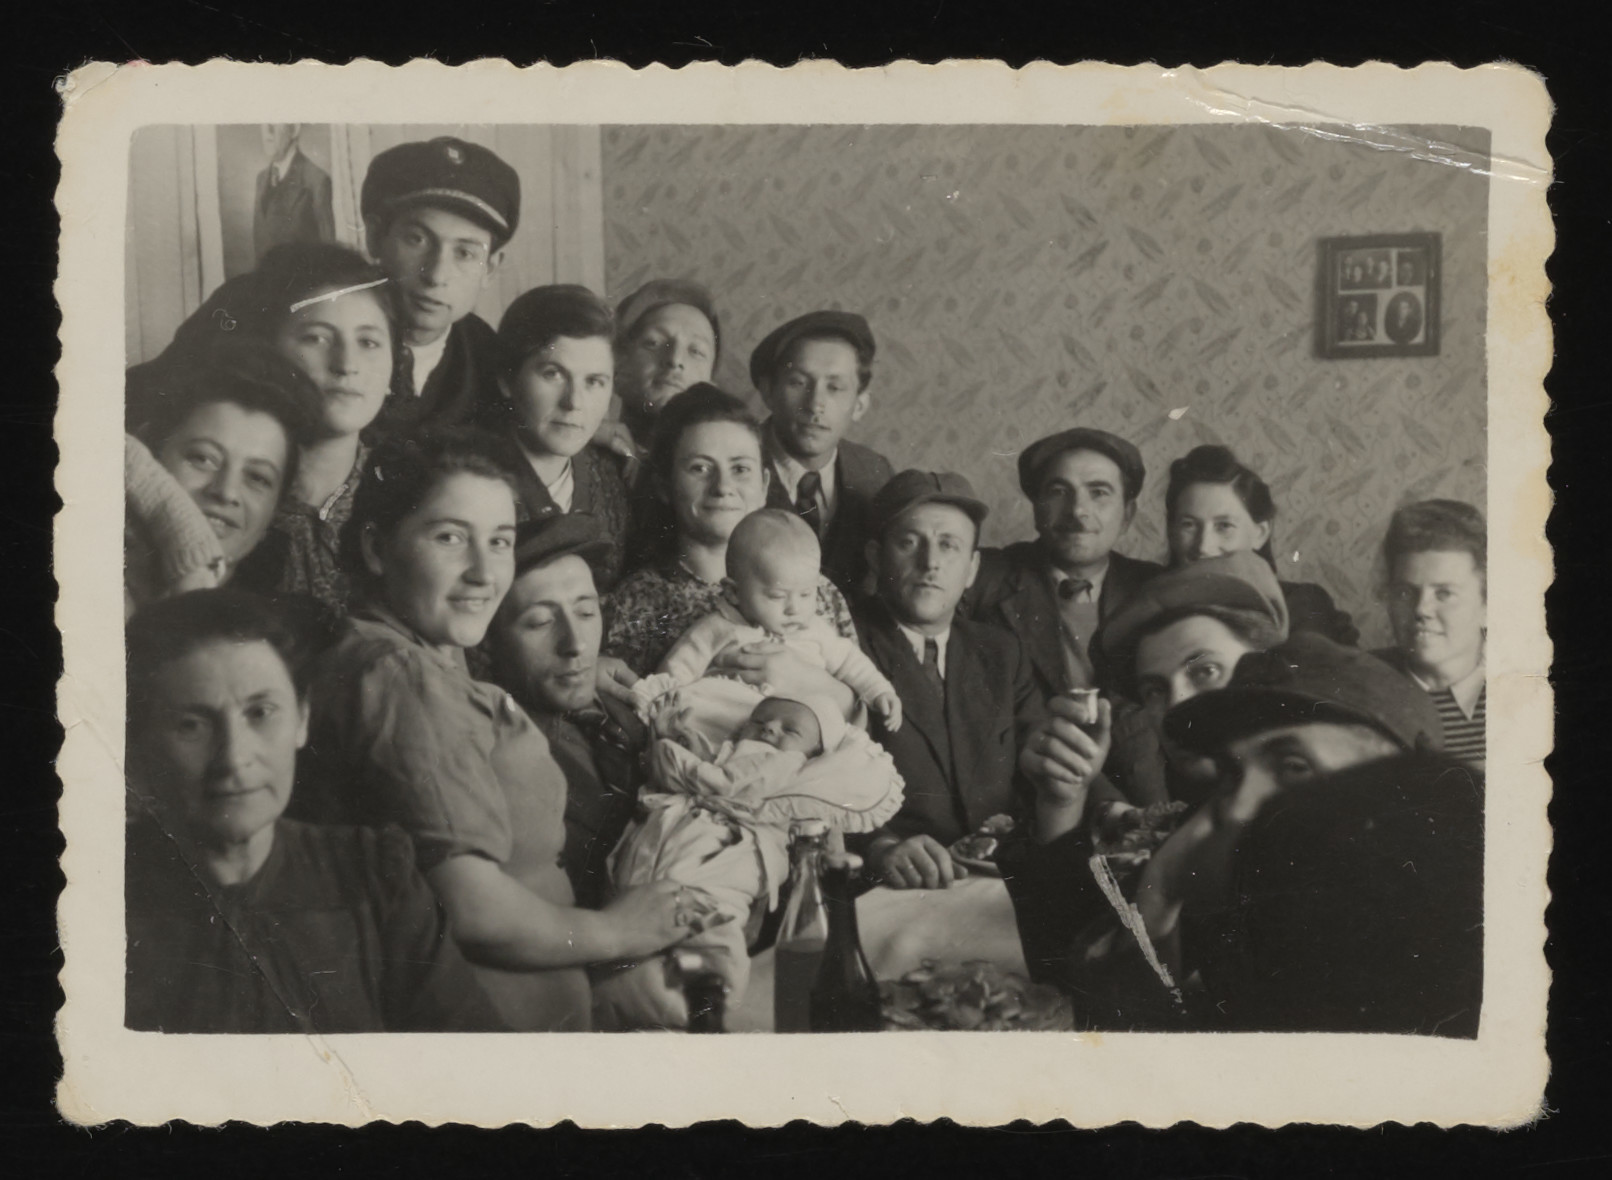 Jewish DPs gather in an apartment in the Foehrenwald displaced persons camp.   The event is thought to have been a joint bris for the two baby boys.  Among those pictured are Carl Nadler, holding his son David Nadler; Max Julian (now Jules) Weinsieder (baby on the right); Bernard Weinsieder (to the right of the babies); Abraham Winiger (foreground, right), Mr. and Mrs. Tony Haberman (the couple nearest the picture on the wall), Mina Winiger (third person from the left in the back row), and Abraham Lew (back row, second from right).